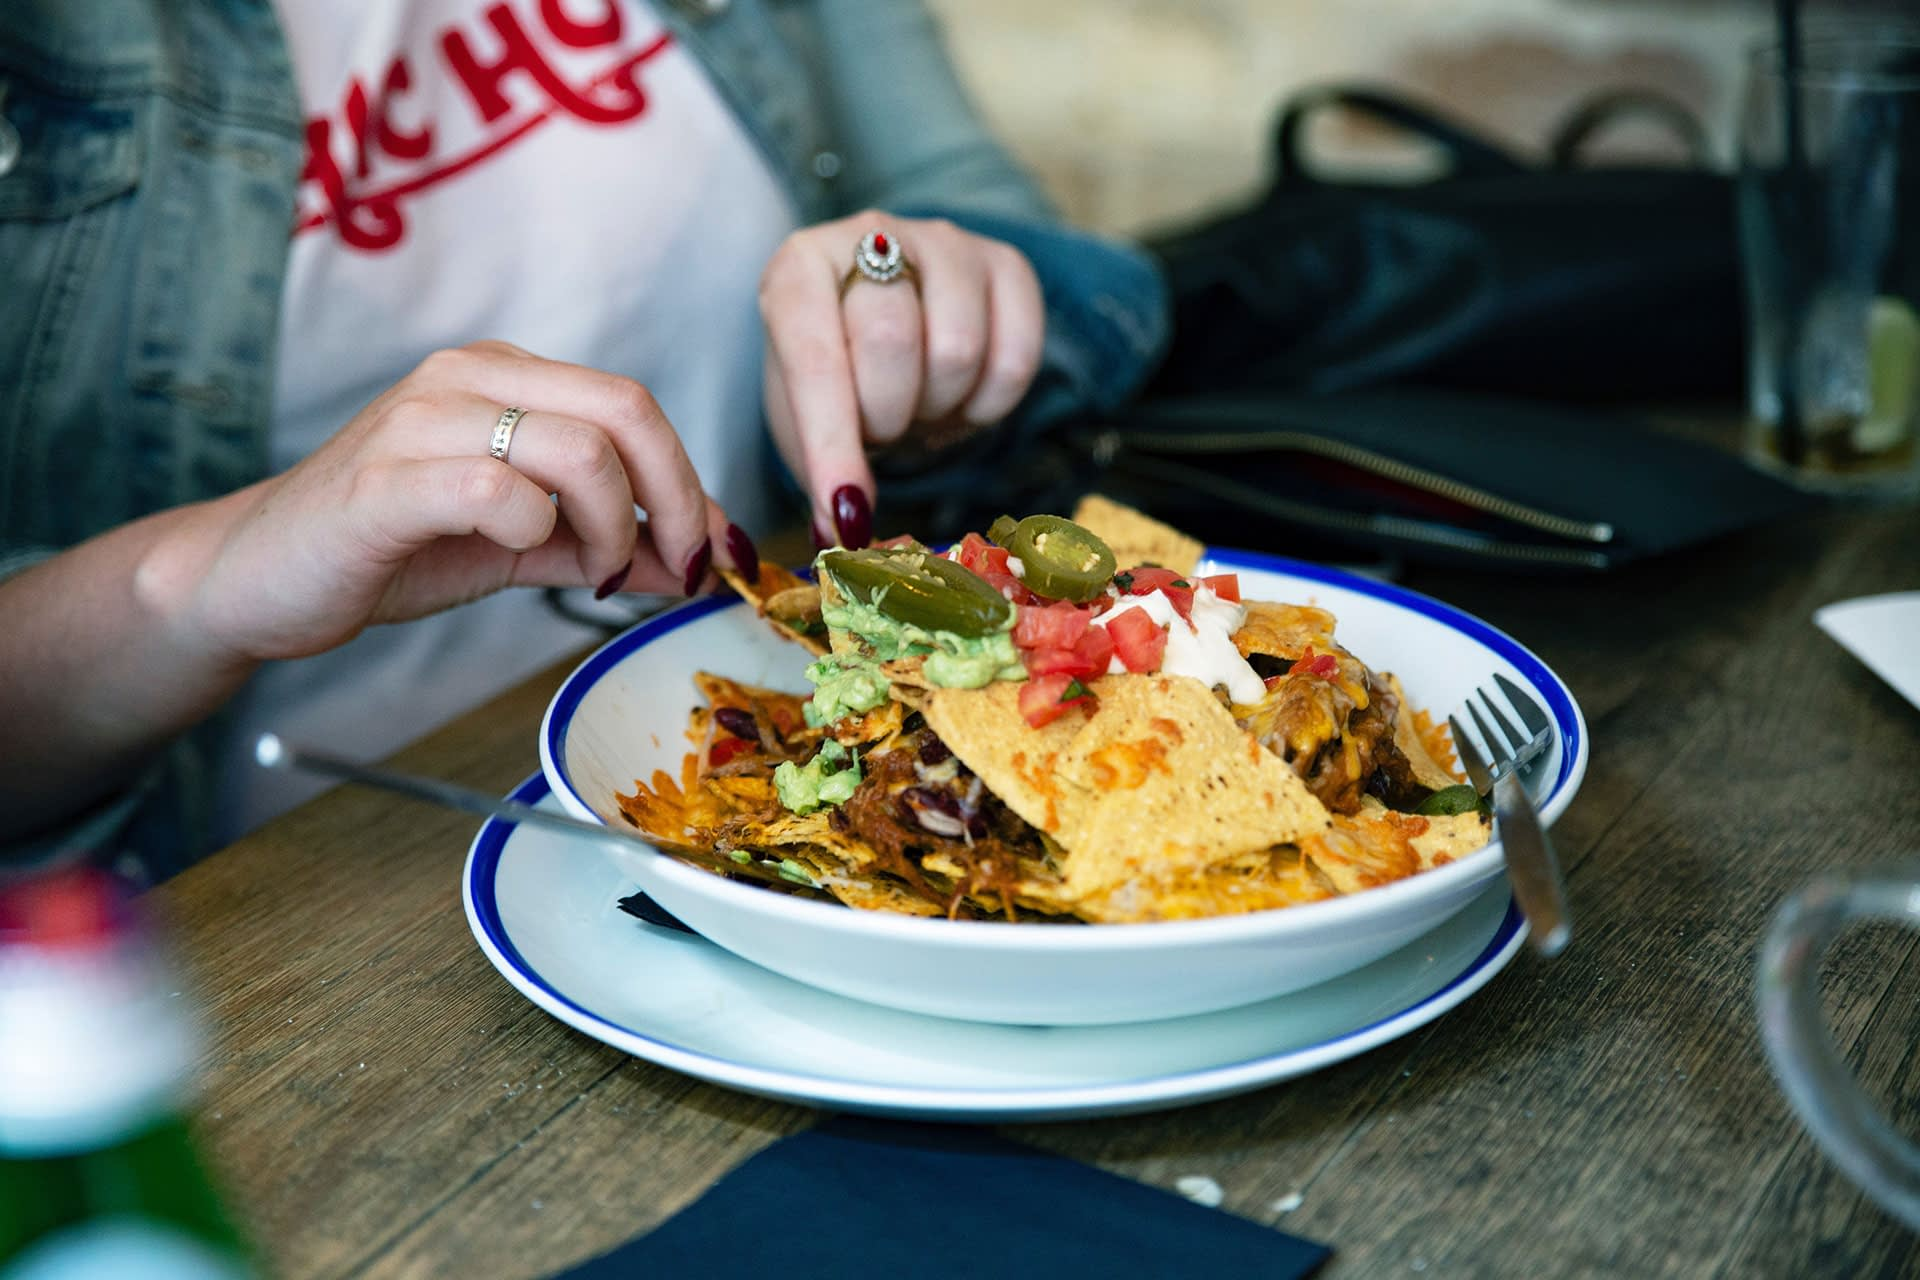 woman eating chicken nachos with cheese as an easy microwave meal